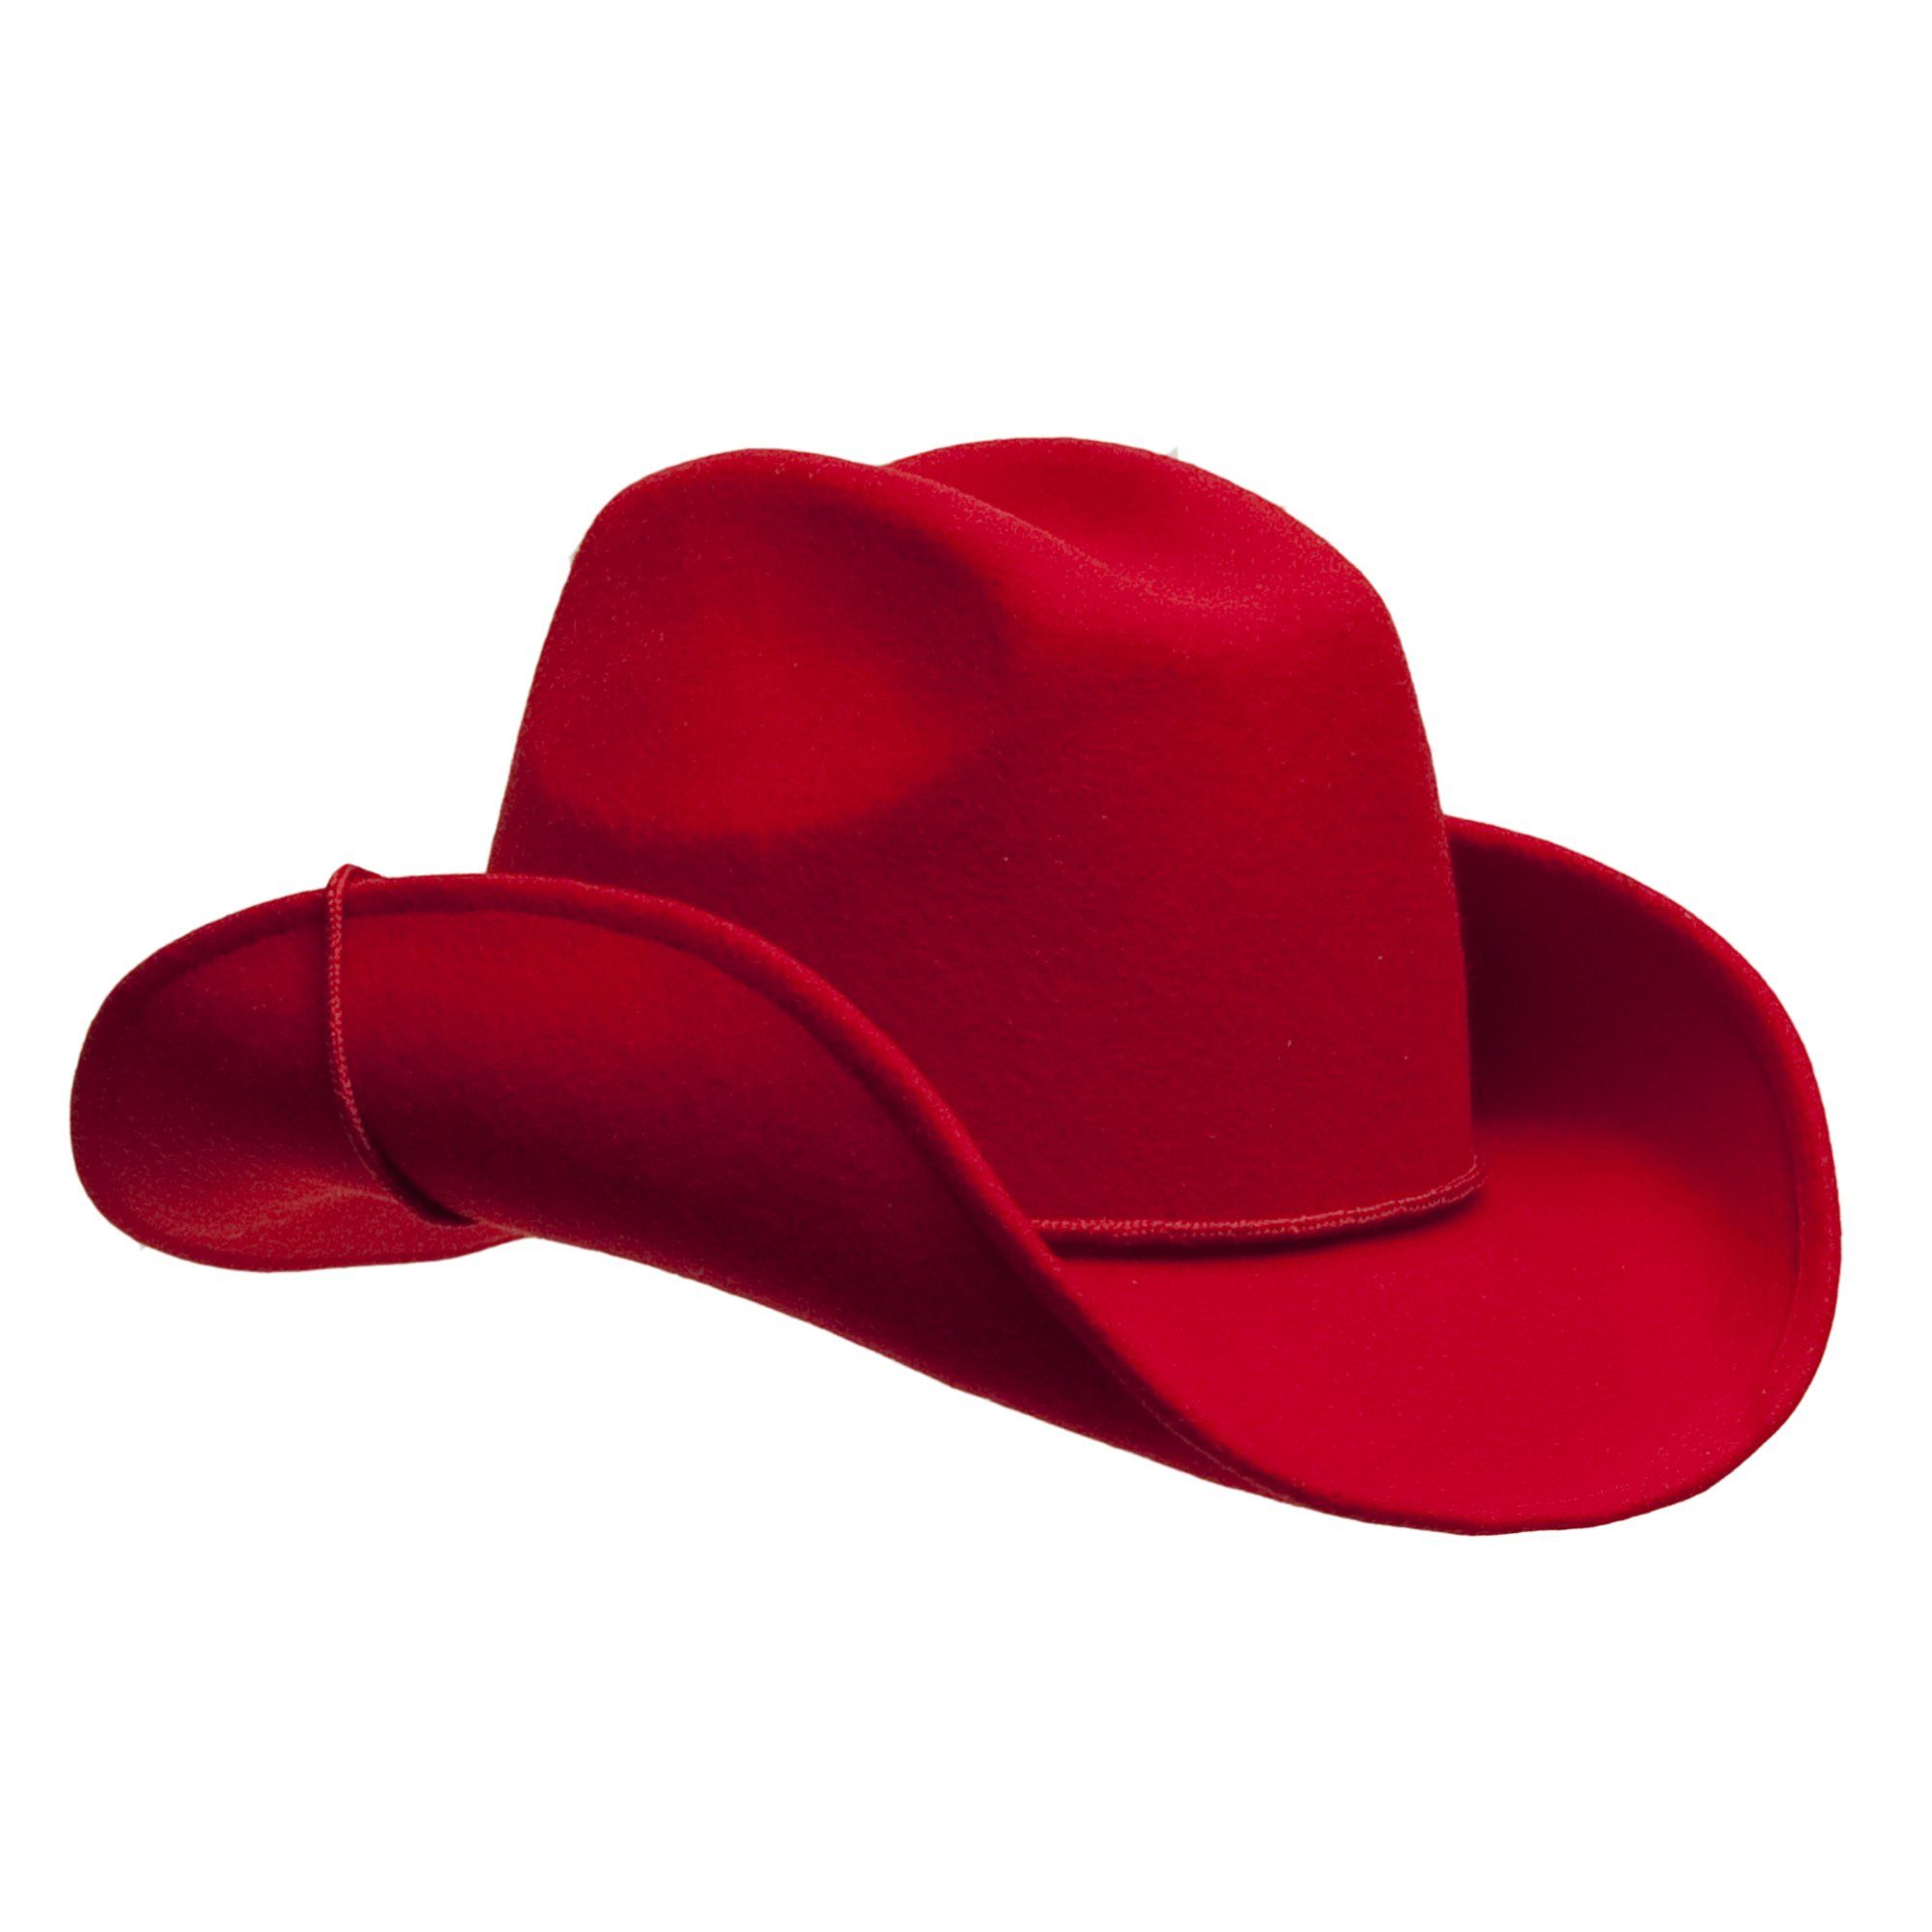 Women s Red Wool Cowboy Hat with Shapeable Brim at Amazon Women s Clothing  store  70d27caacae